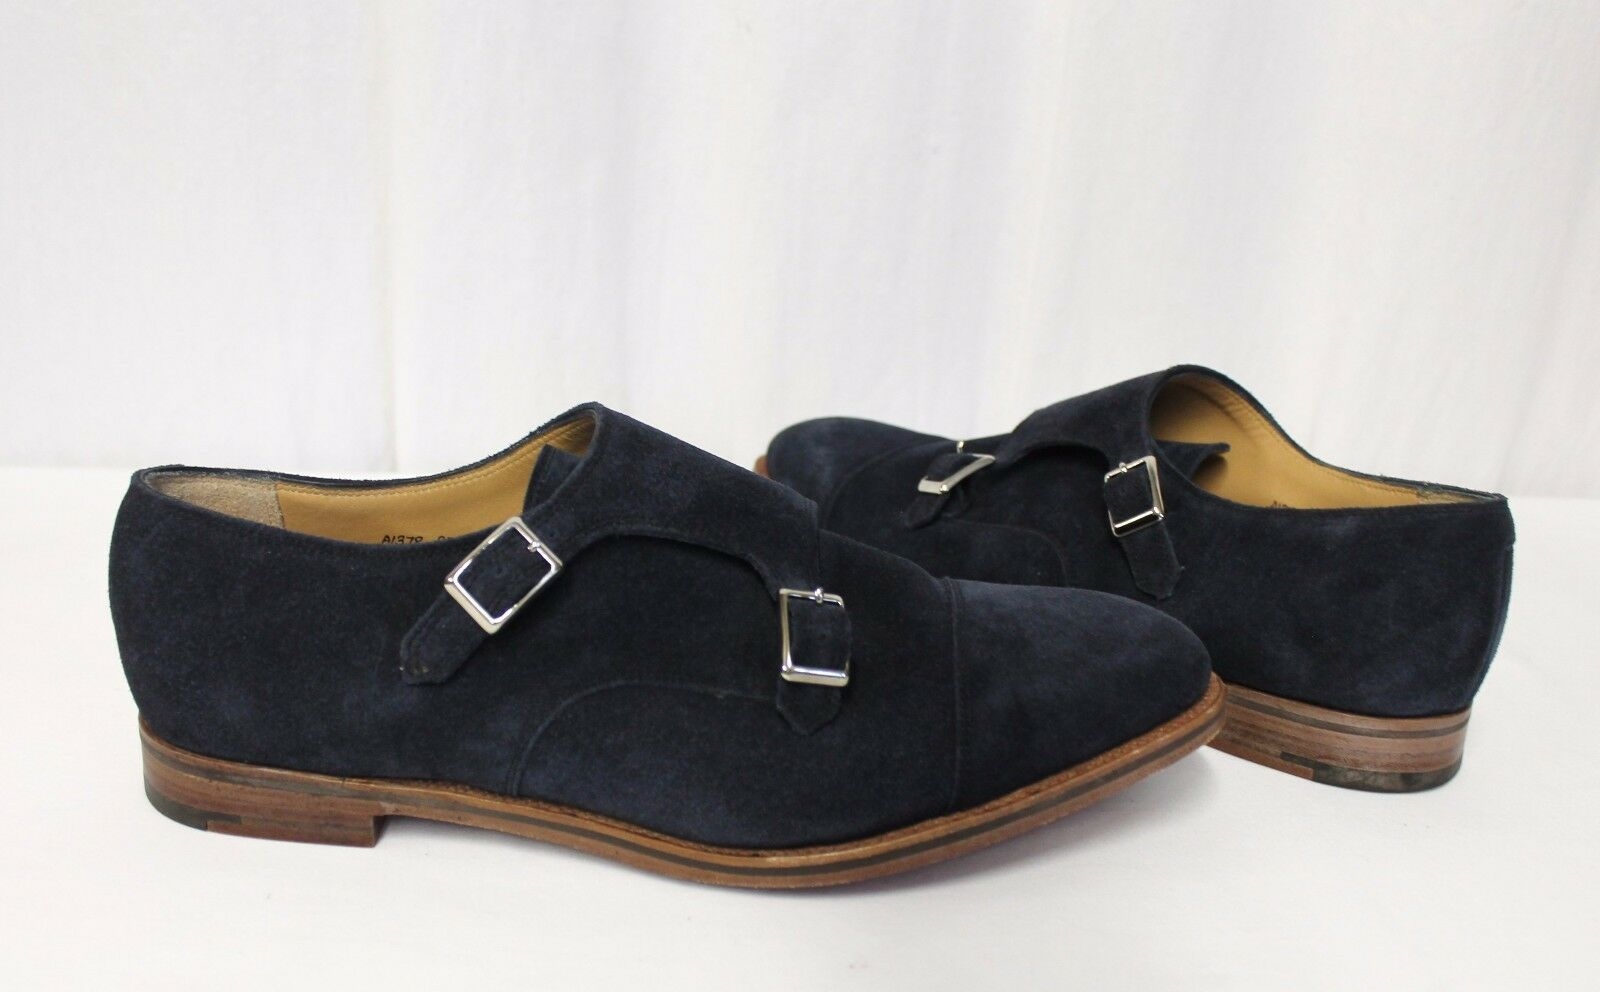 Alfred Ssilver For J.Crew Double Monk Strap shoes In Suede Navy 12 A1378